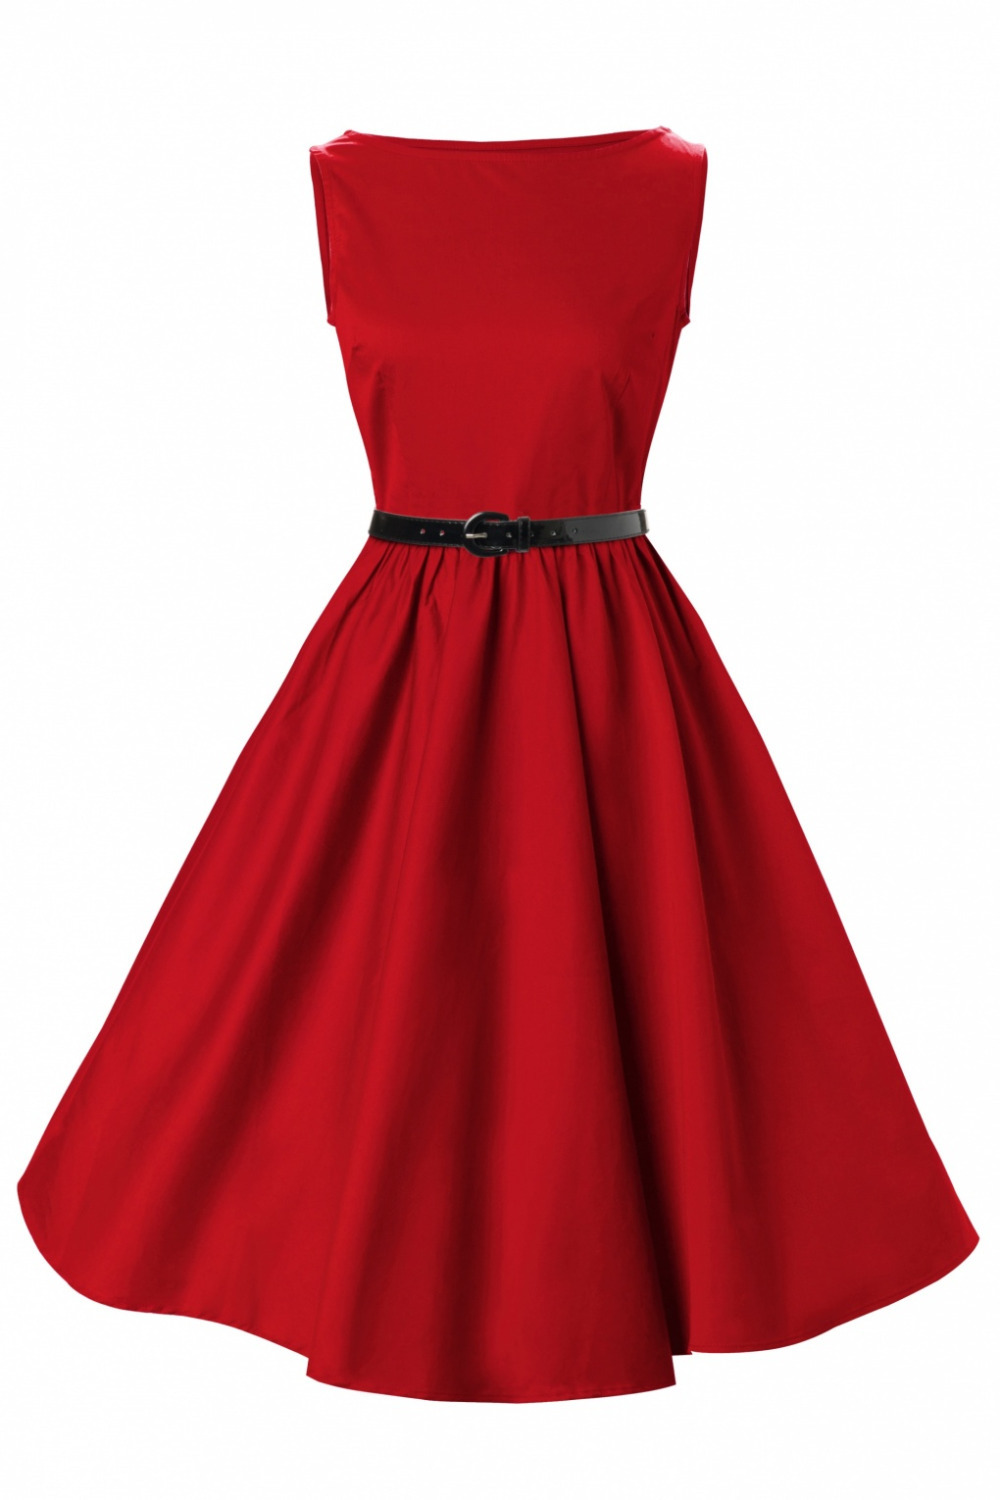 Dropshipping Women's Special Occasion Clothing Red Dresses